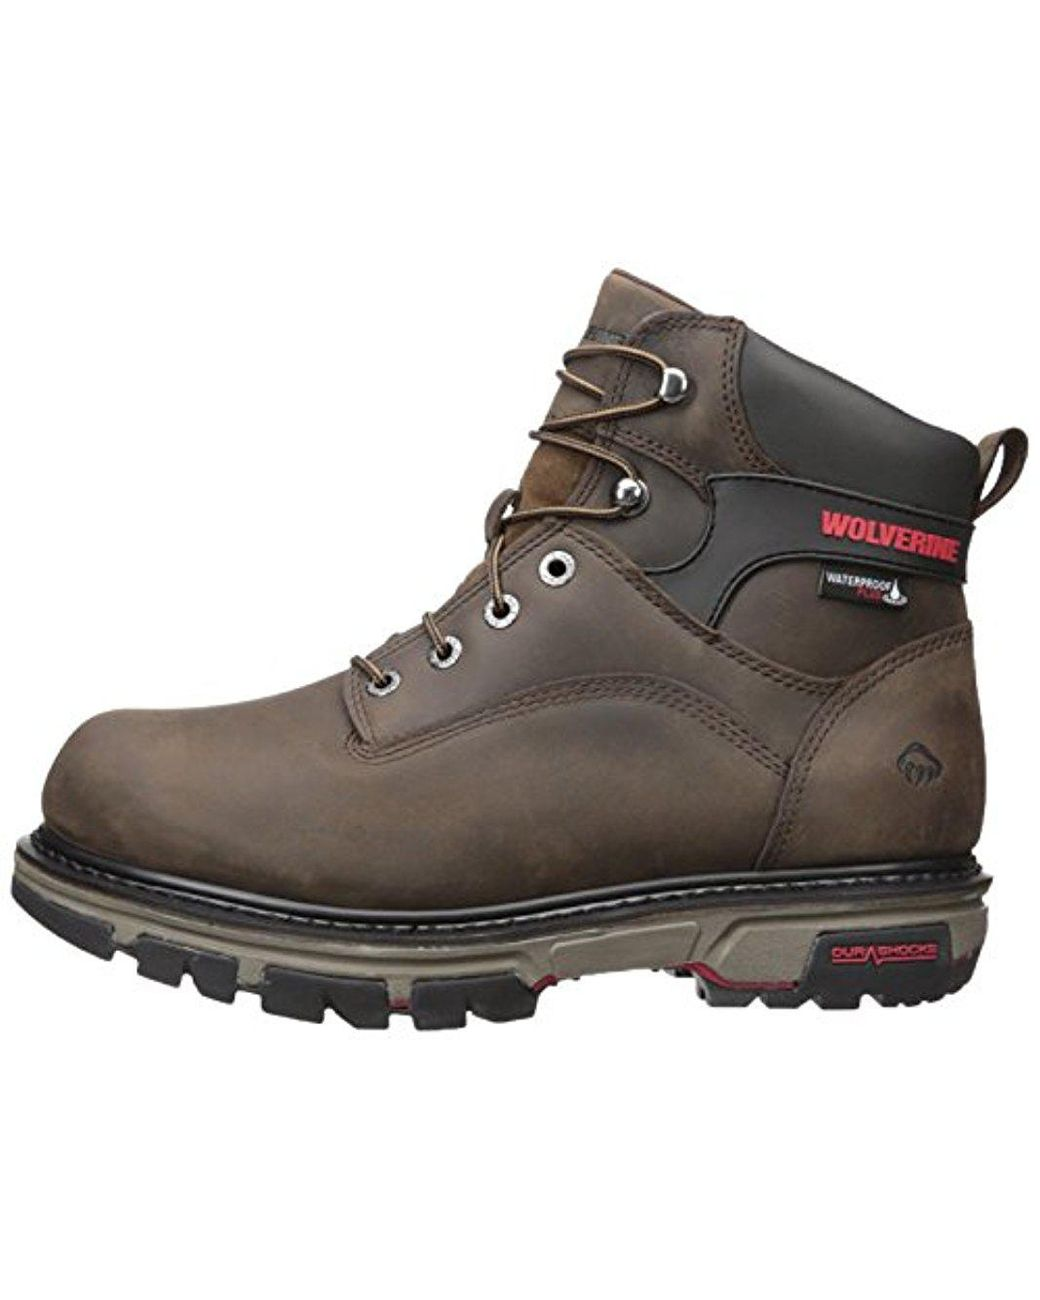 08c392e6e Wolverine Nation 6 Inch Waterproof Soft Toe Work Shoe in Brown for Men -  Save 14% - Lyst